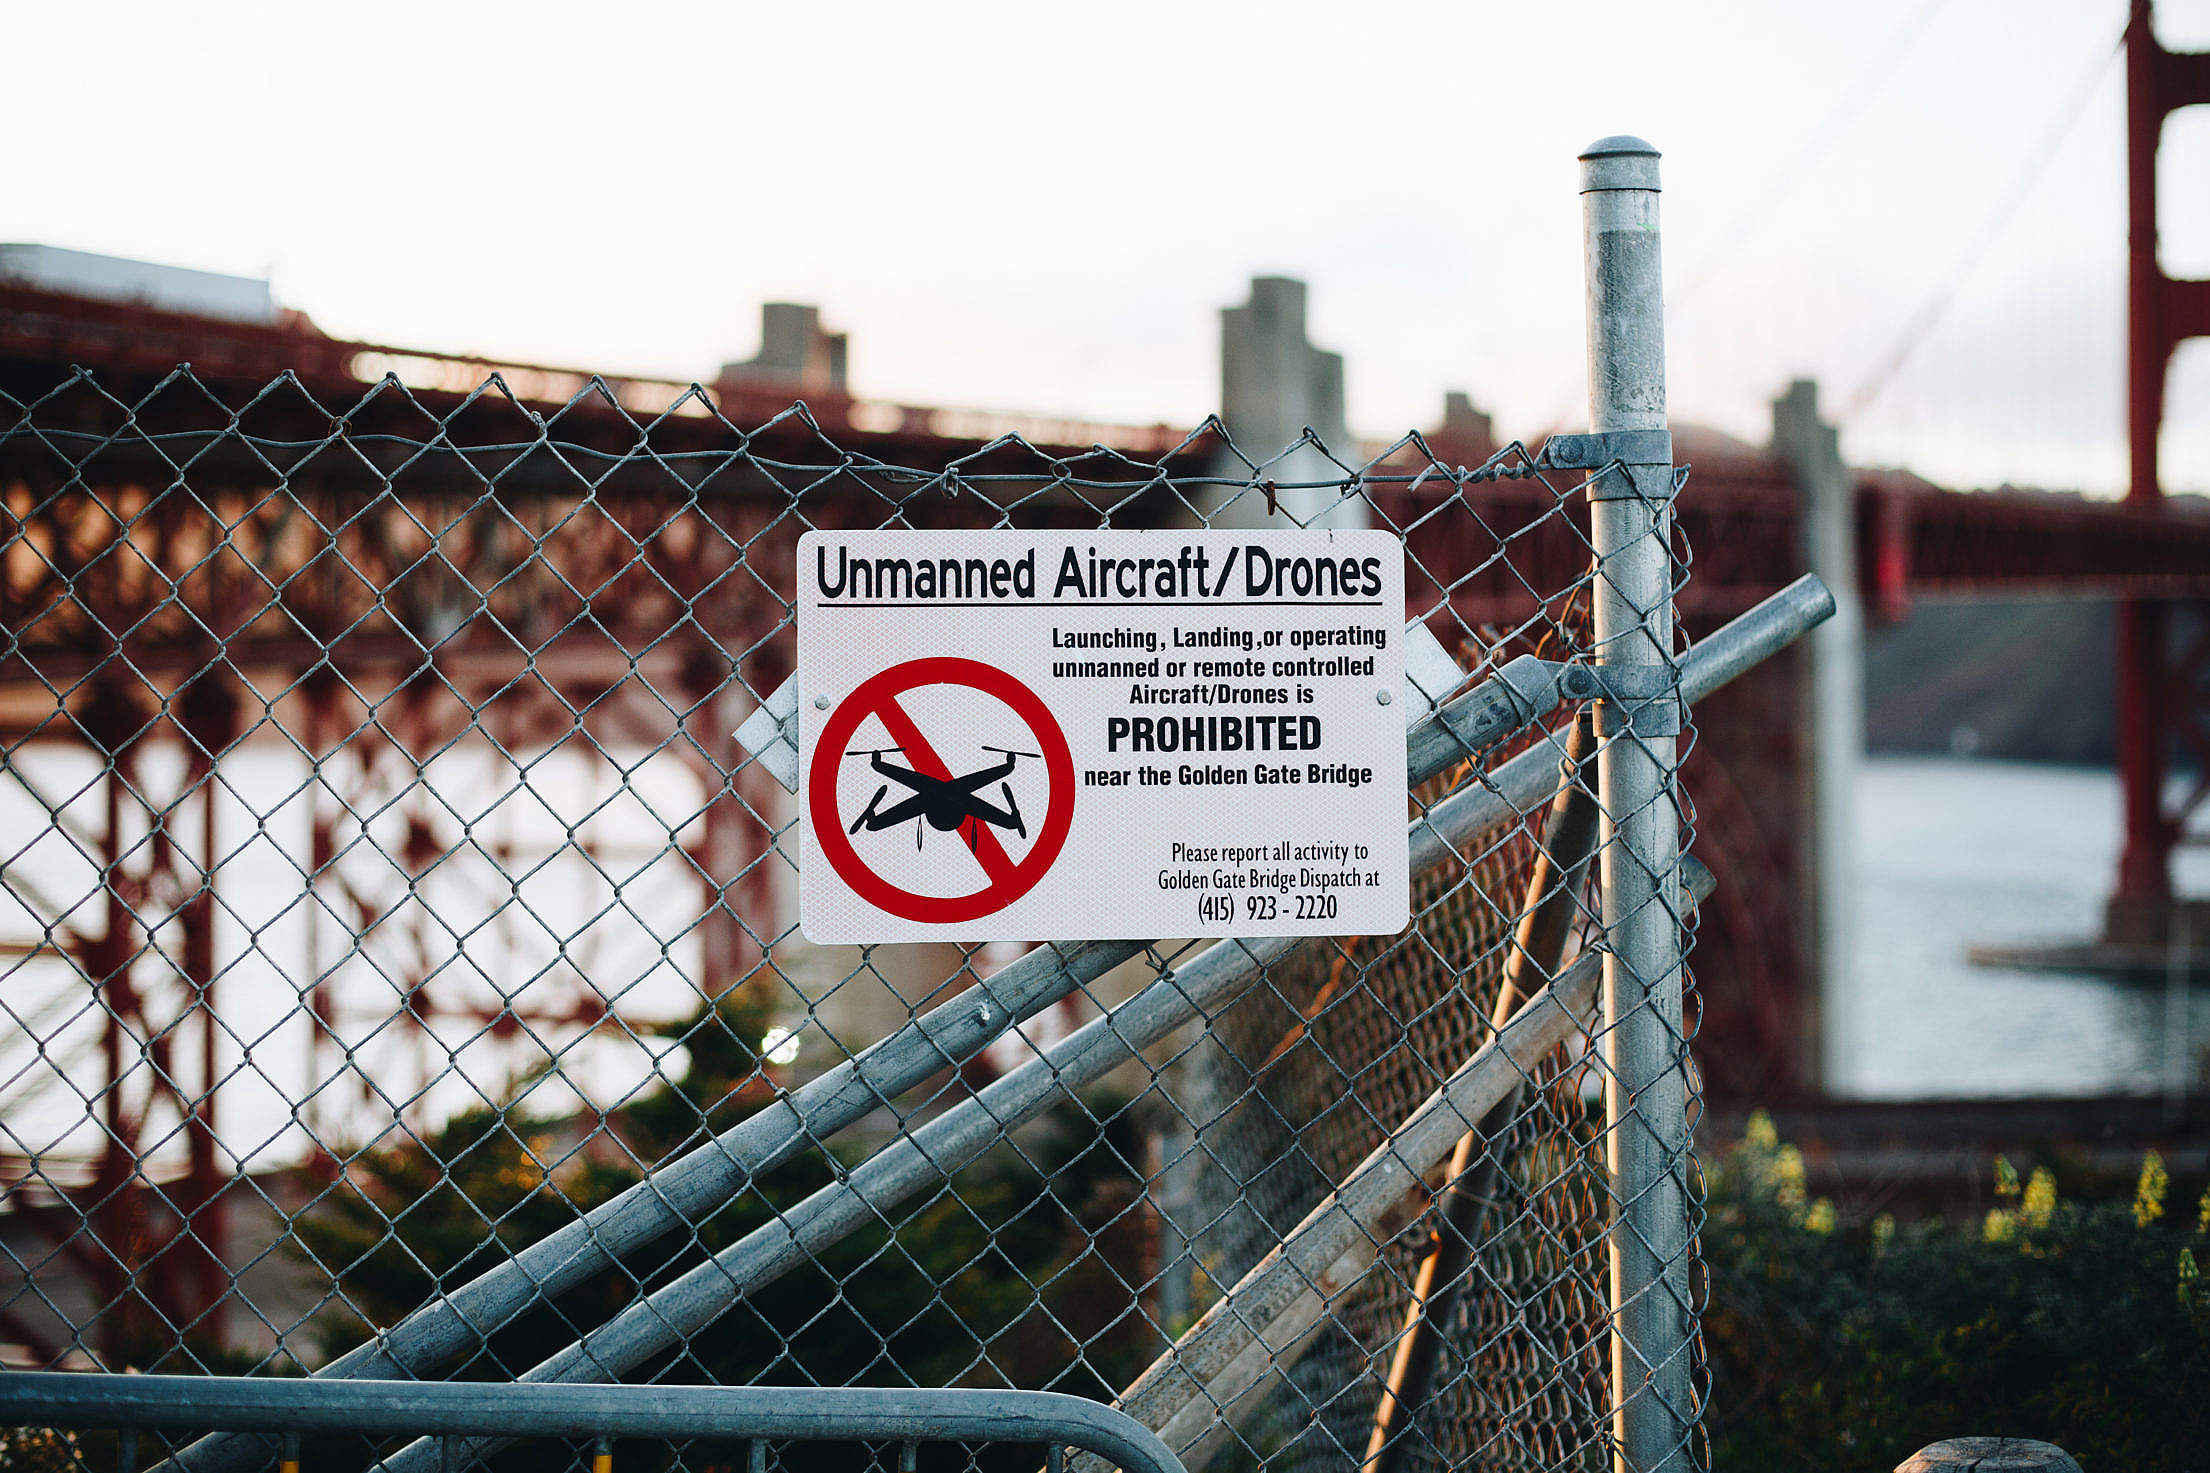 Download No Drone Zone Unmanned Aircraft and Drones Prohibited Free Stock Photo